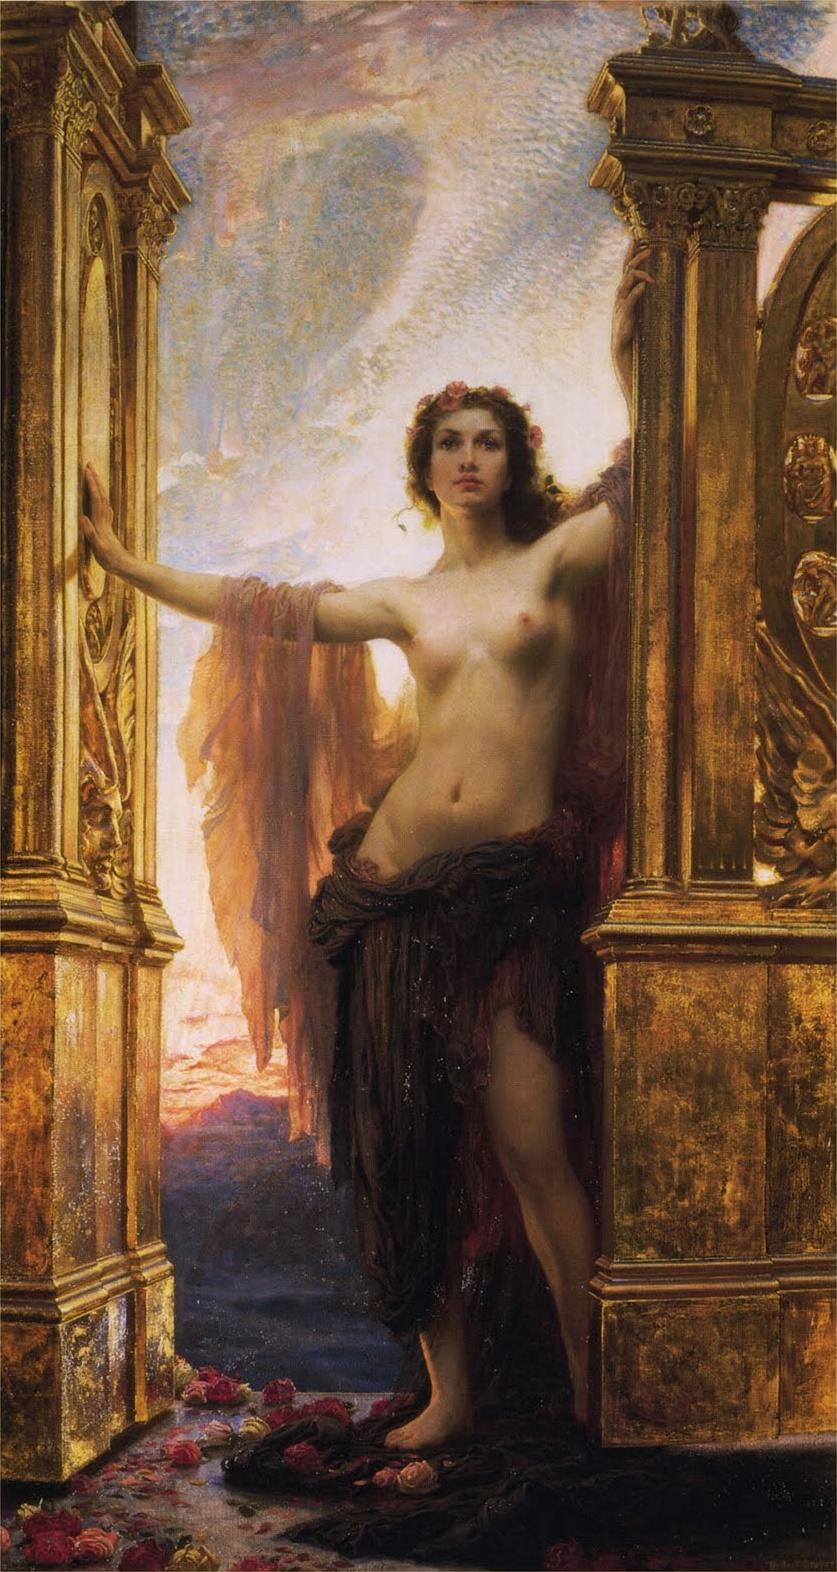 Herbert_James_Draper,_The_Gates_of_Dawn,_1900